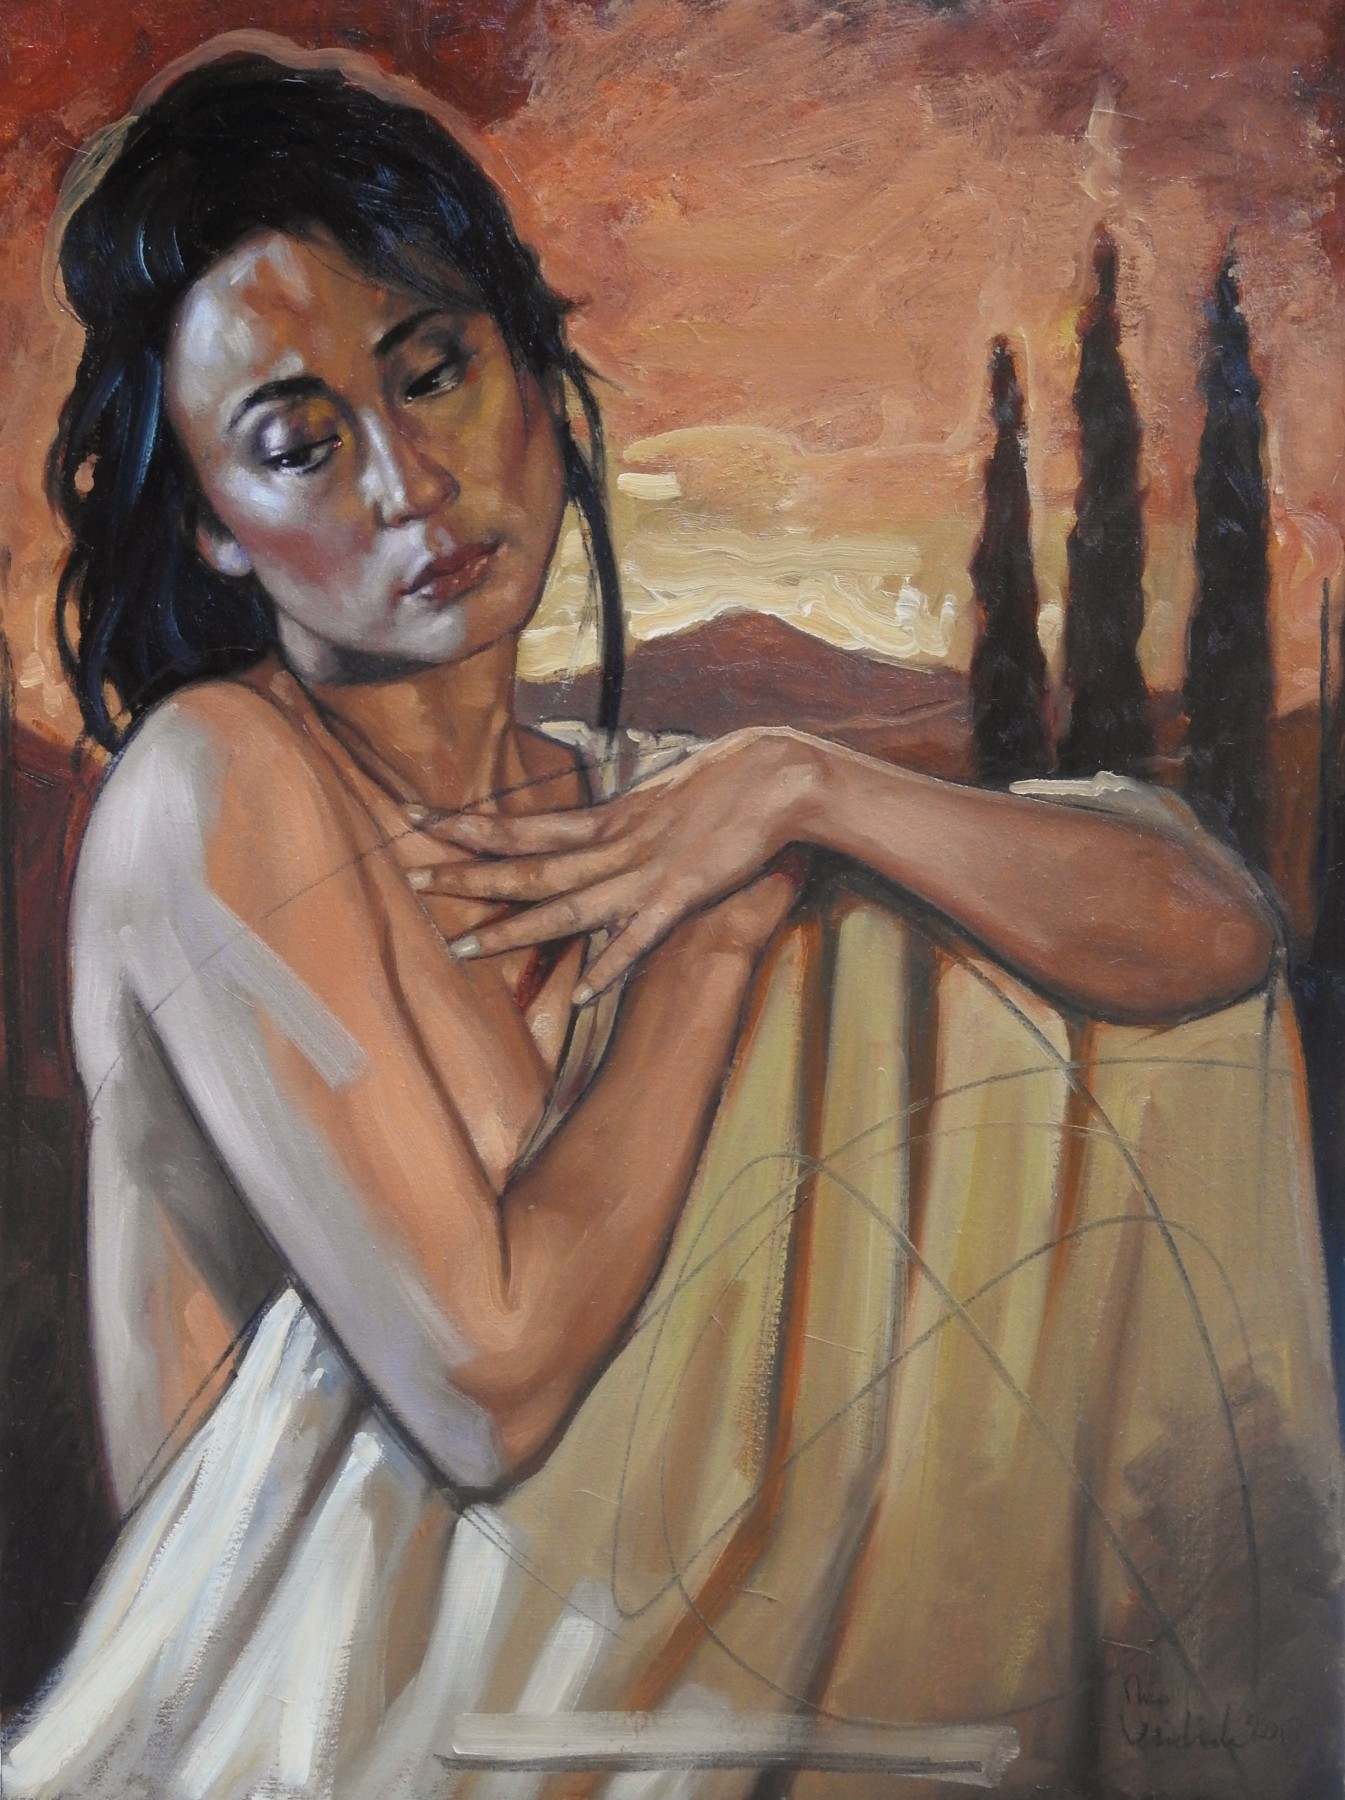 Woman in Tuscany Evening Sun 2018 31x23